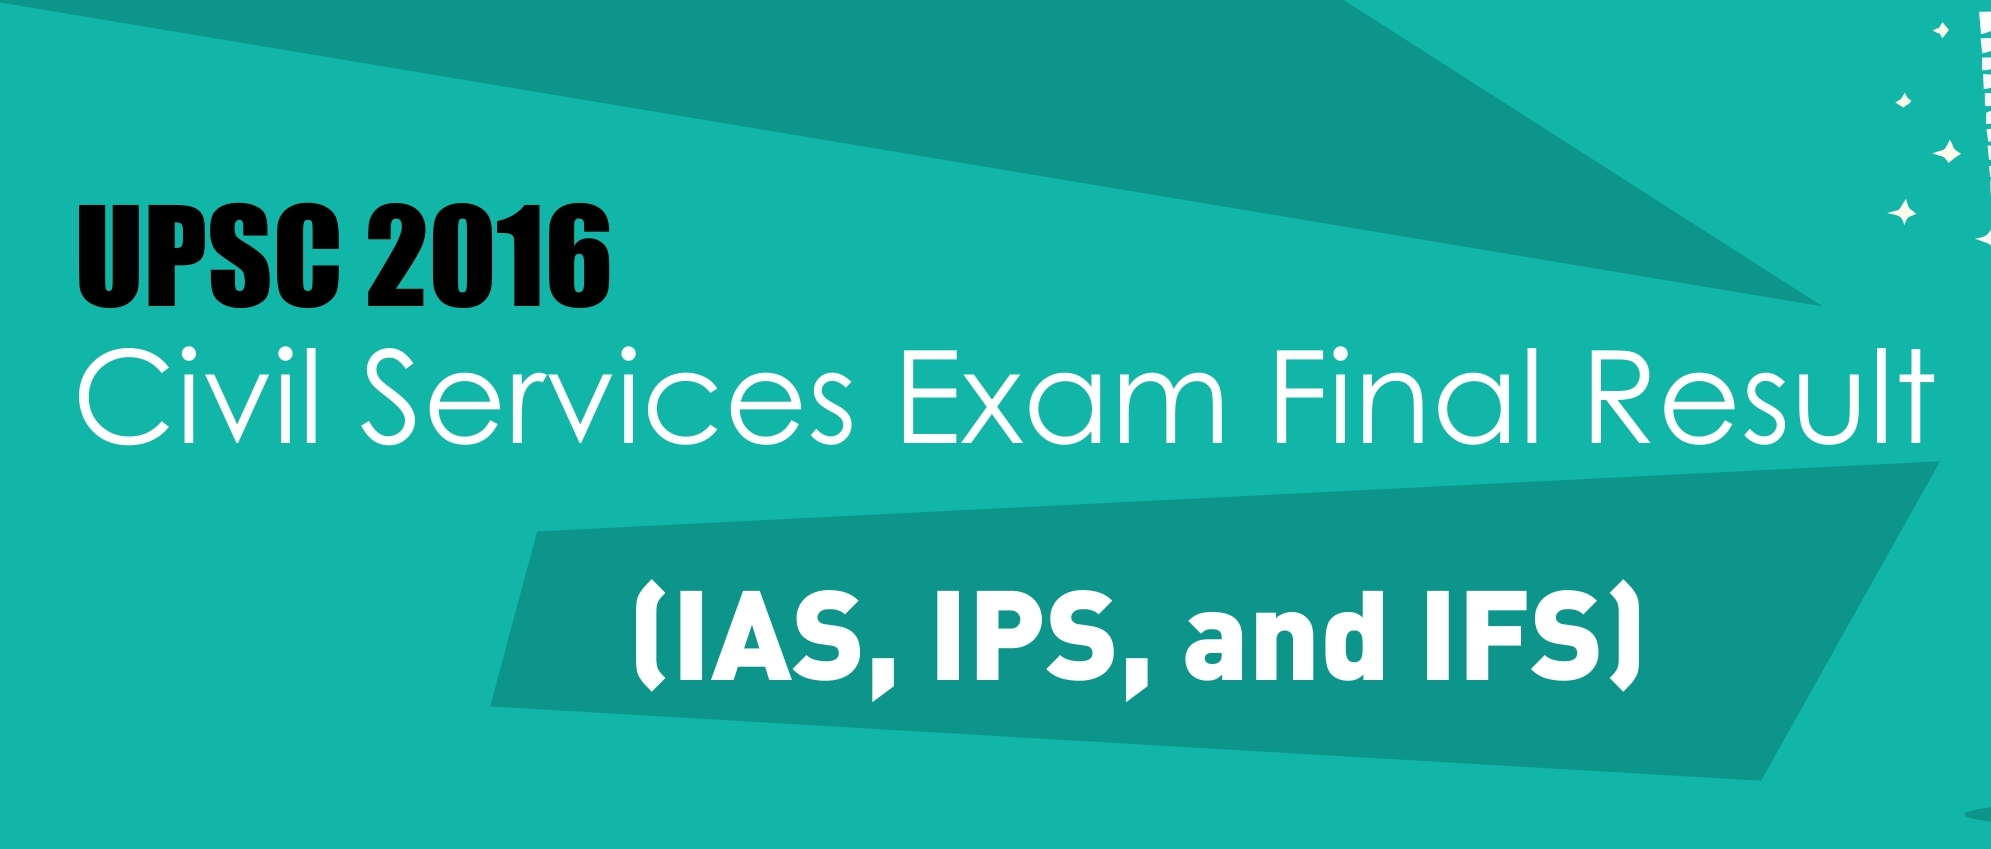 UPSC 2016 Civil Services Exam Final Result - IAS, IPS, IFS